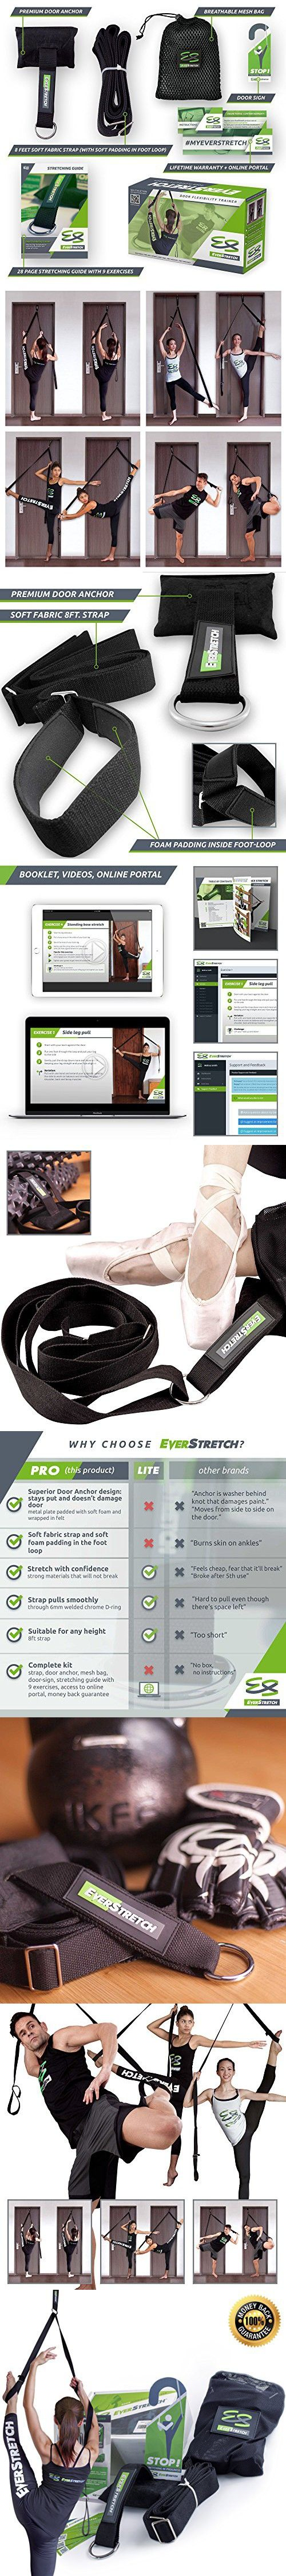 Leg Stretcher: Get More Flexible With This Door Flexibility Trainer by EverStretch: Premium stretching equipment for ballet, dance, MMA, taekwondo & gymnastics. Your own portable stretch machine!